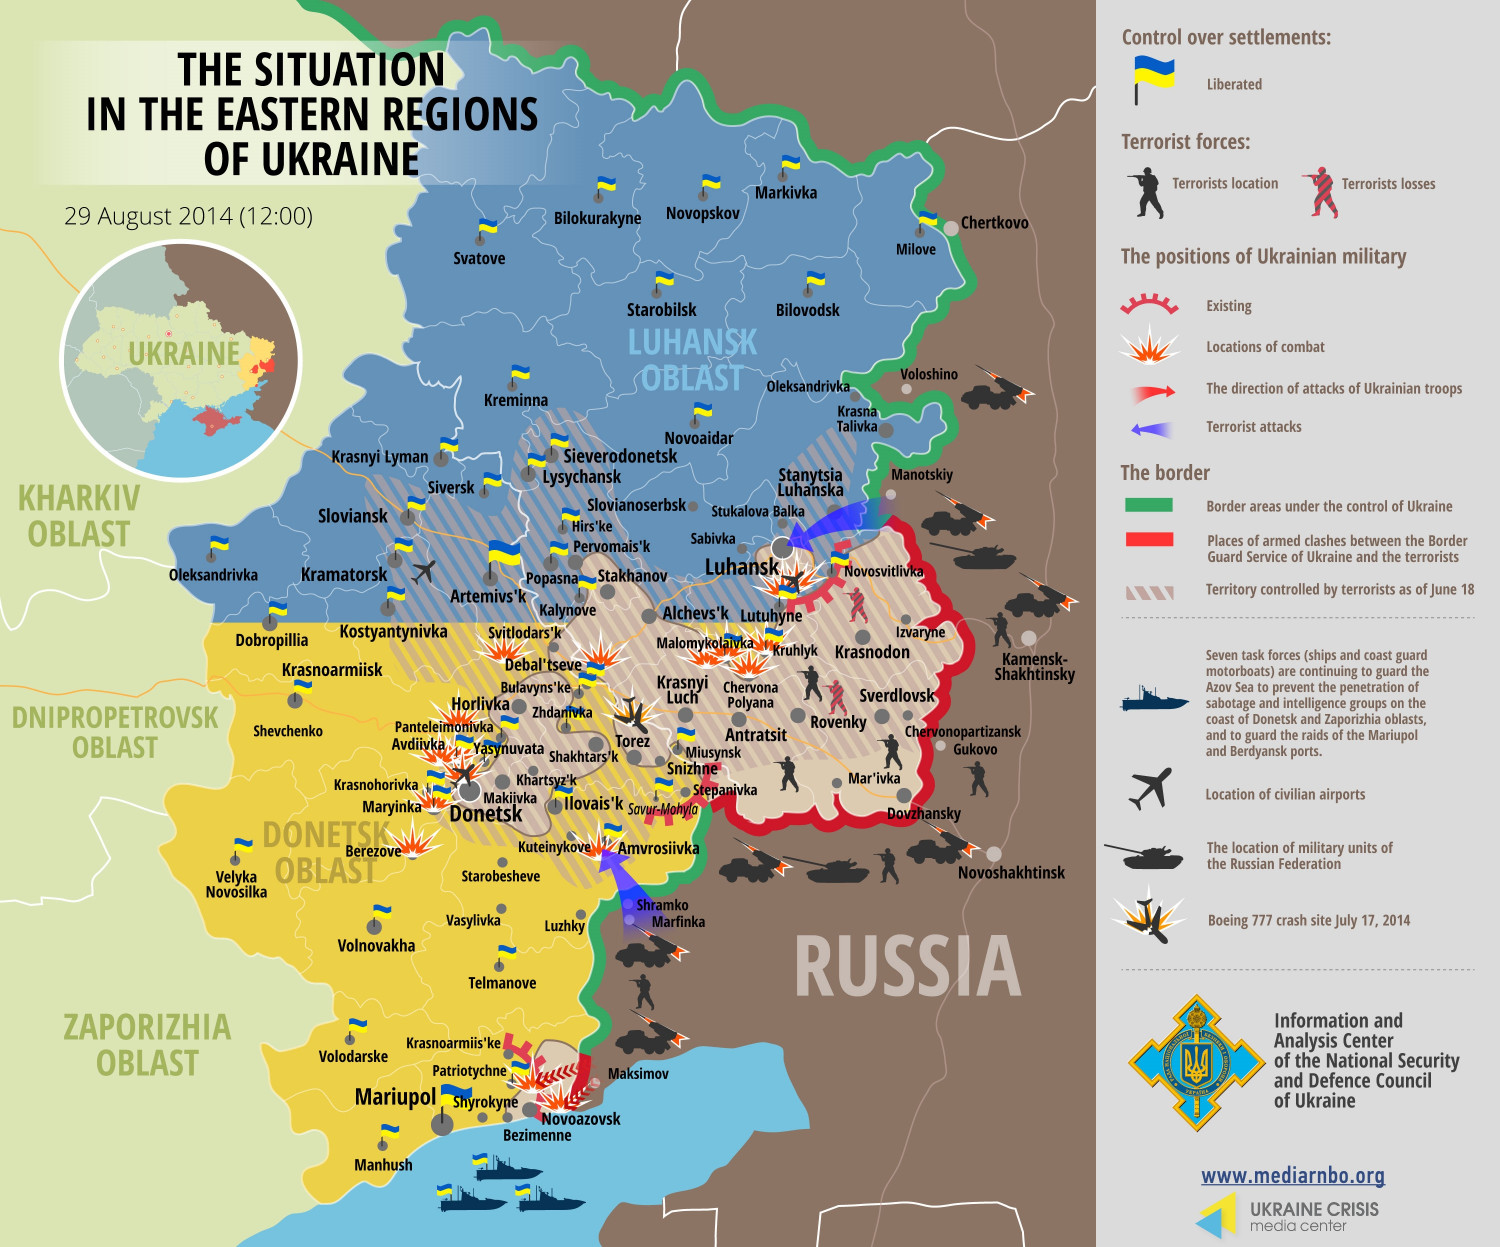 Situation in Eastern Regions of Ukraine, August 29 Infographic